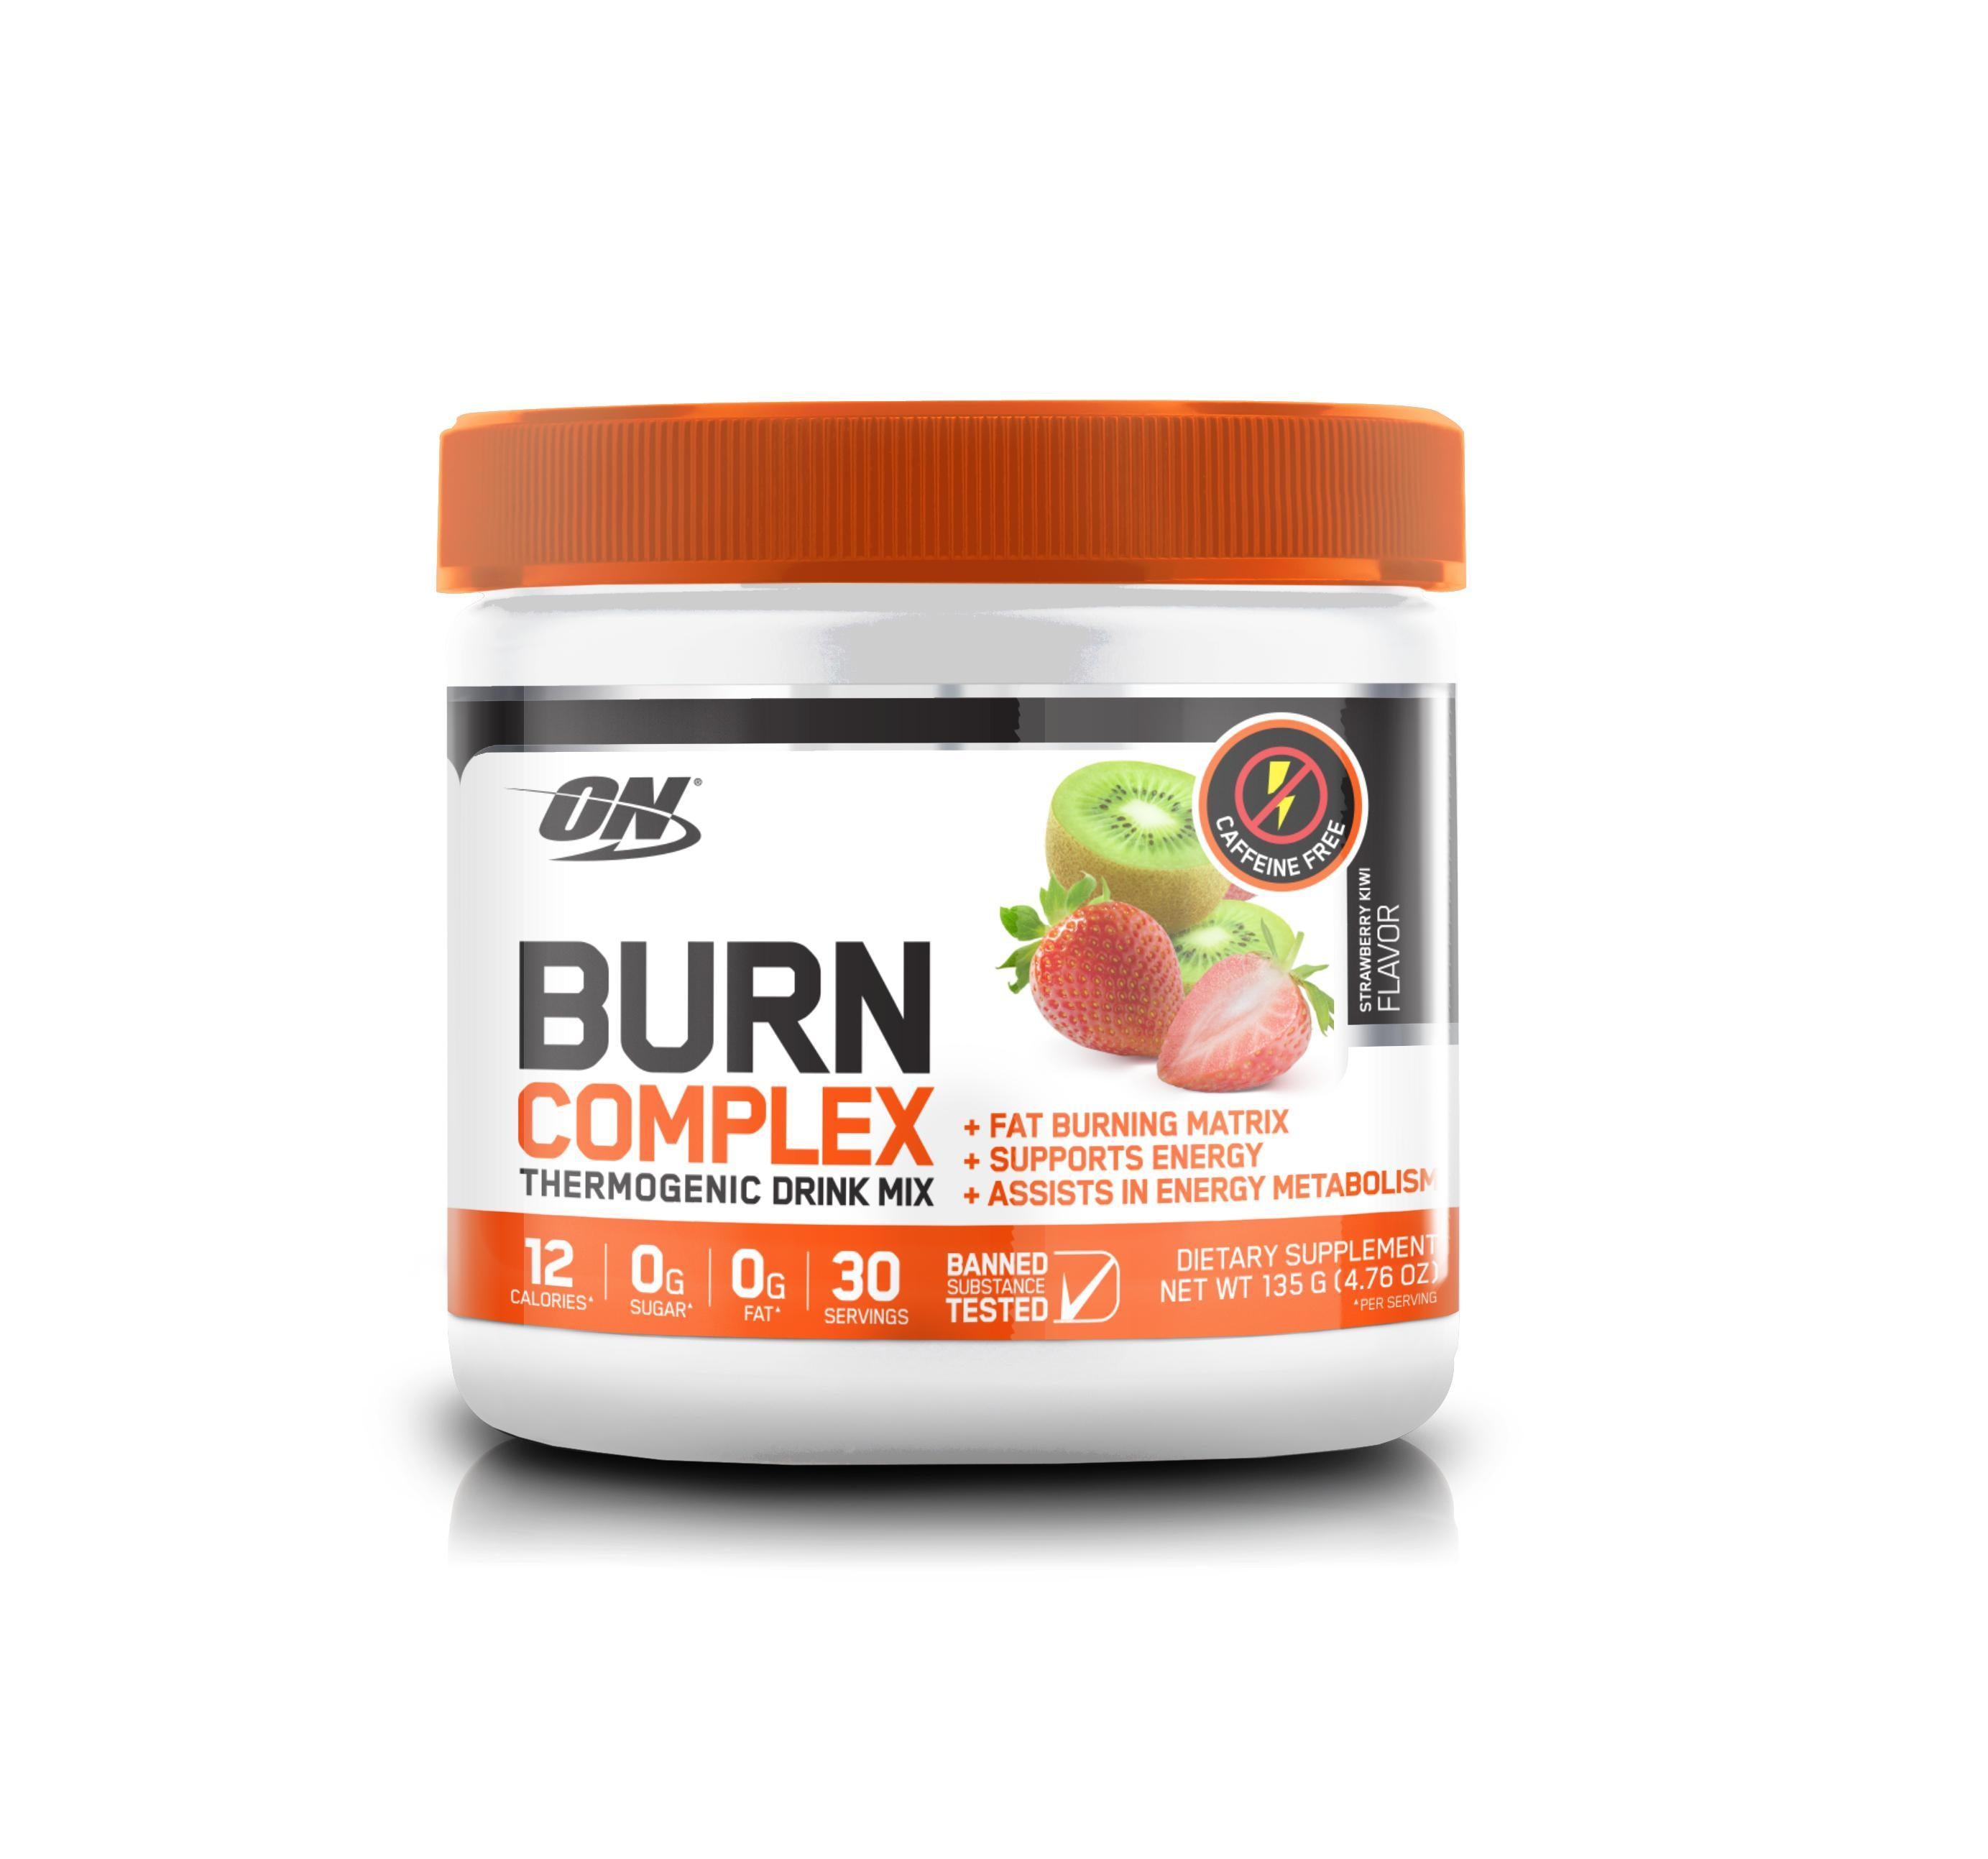 ON Burn Complex STIM FREE-Weight Loss - Fat Burners-Optimum Nutrition-30 Serves-STRAWBERRY KIWI-Thrive Health and Nutrition